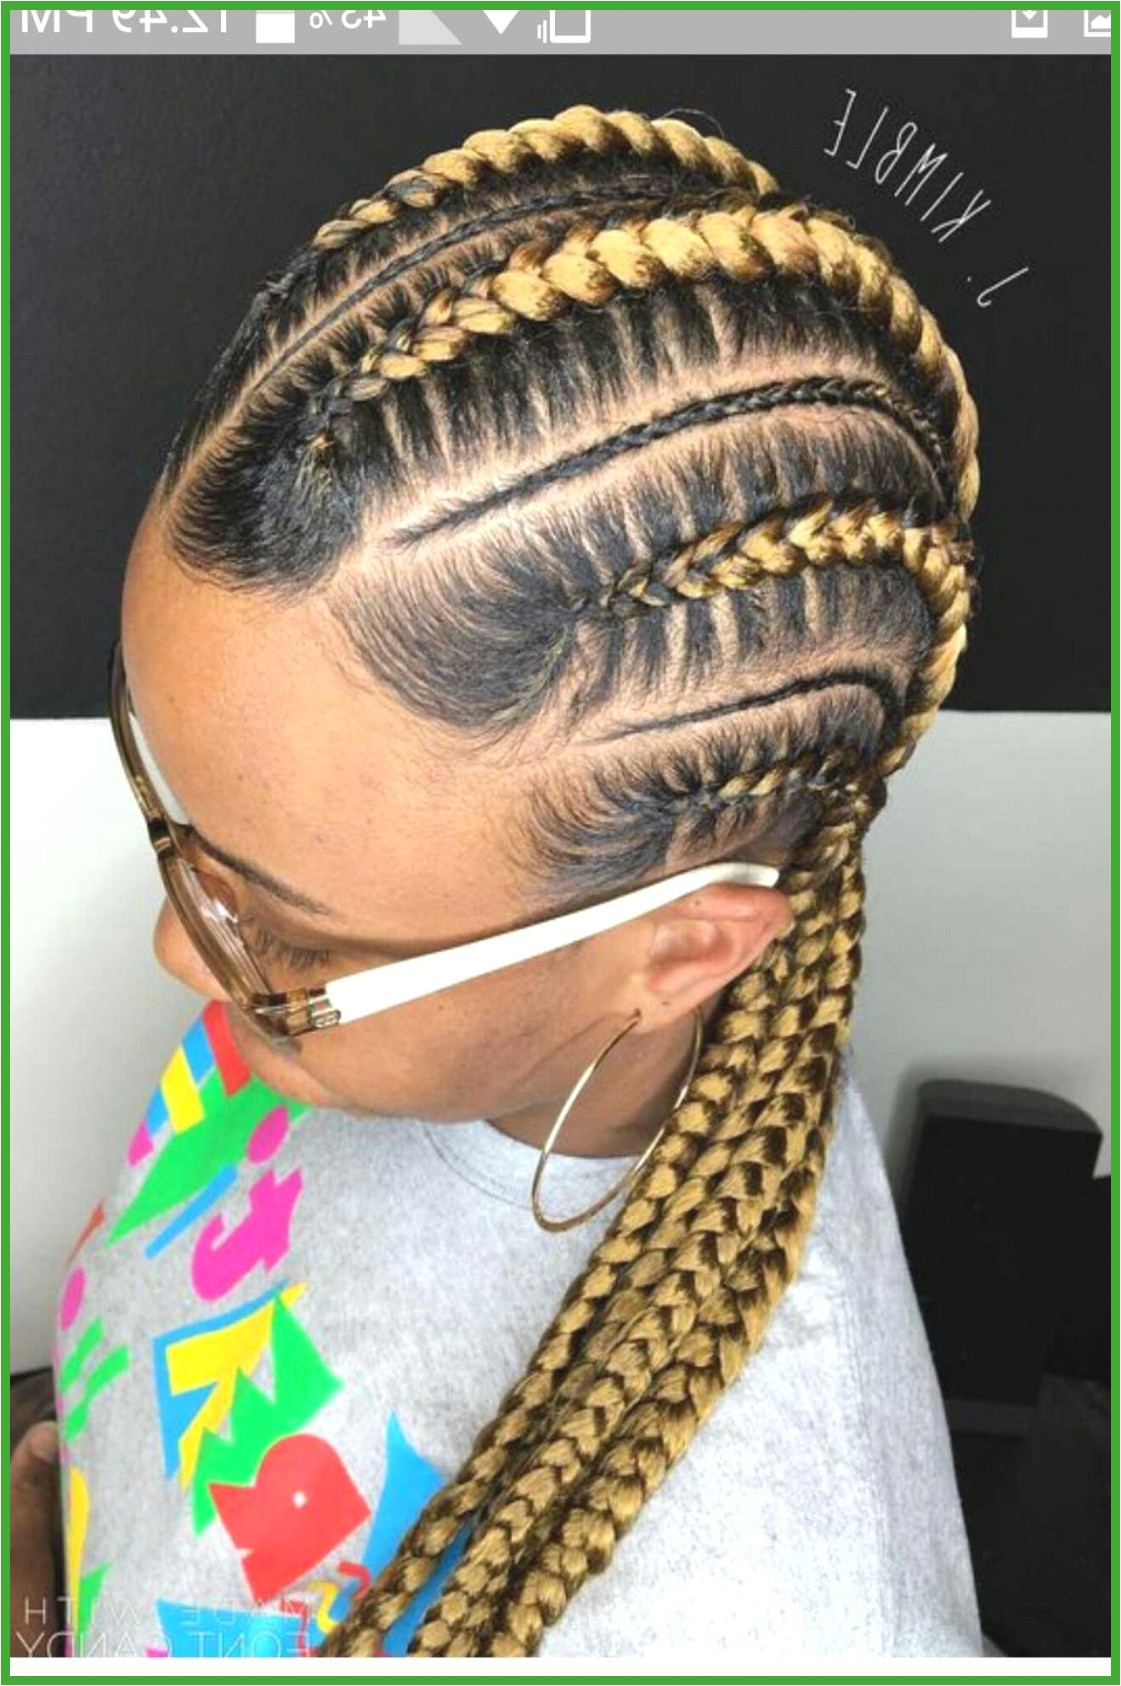 Braid Hairstyles New Big Braids Hairstyles Fresh Micro Hairstyles 0d Regrowhairproducts